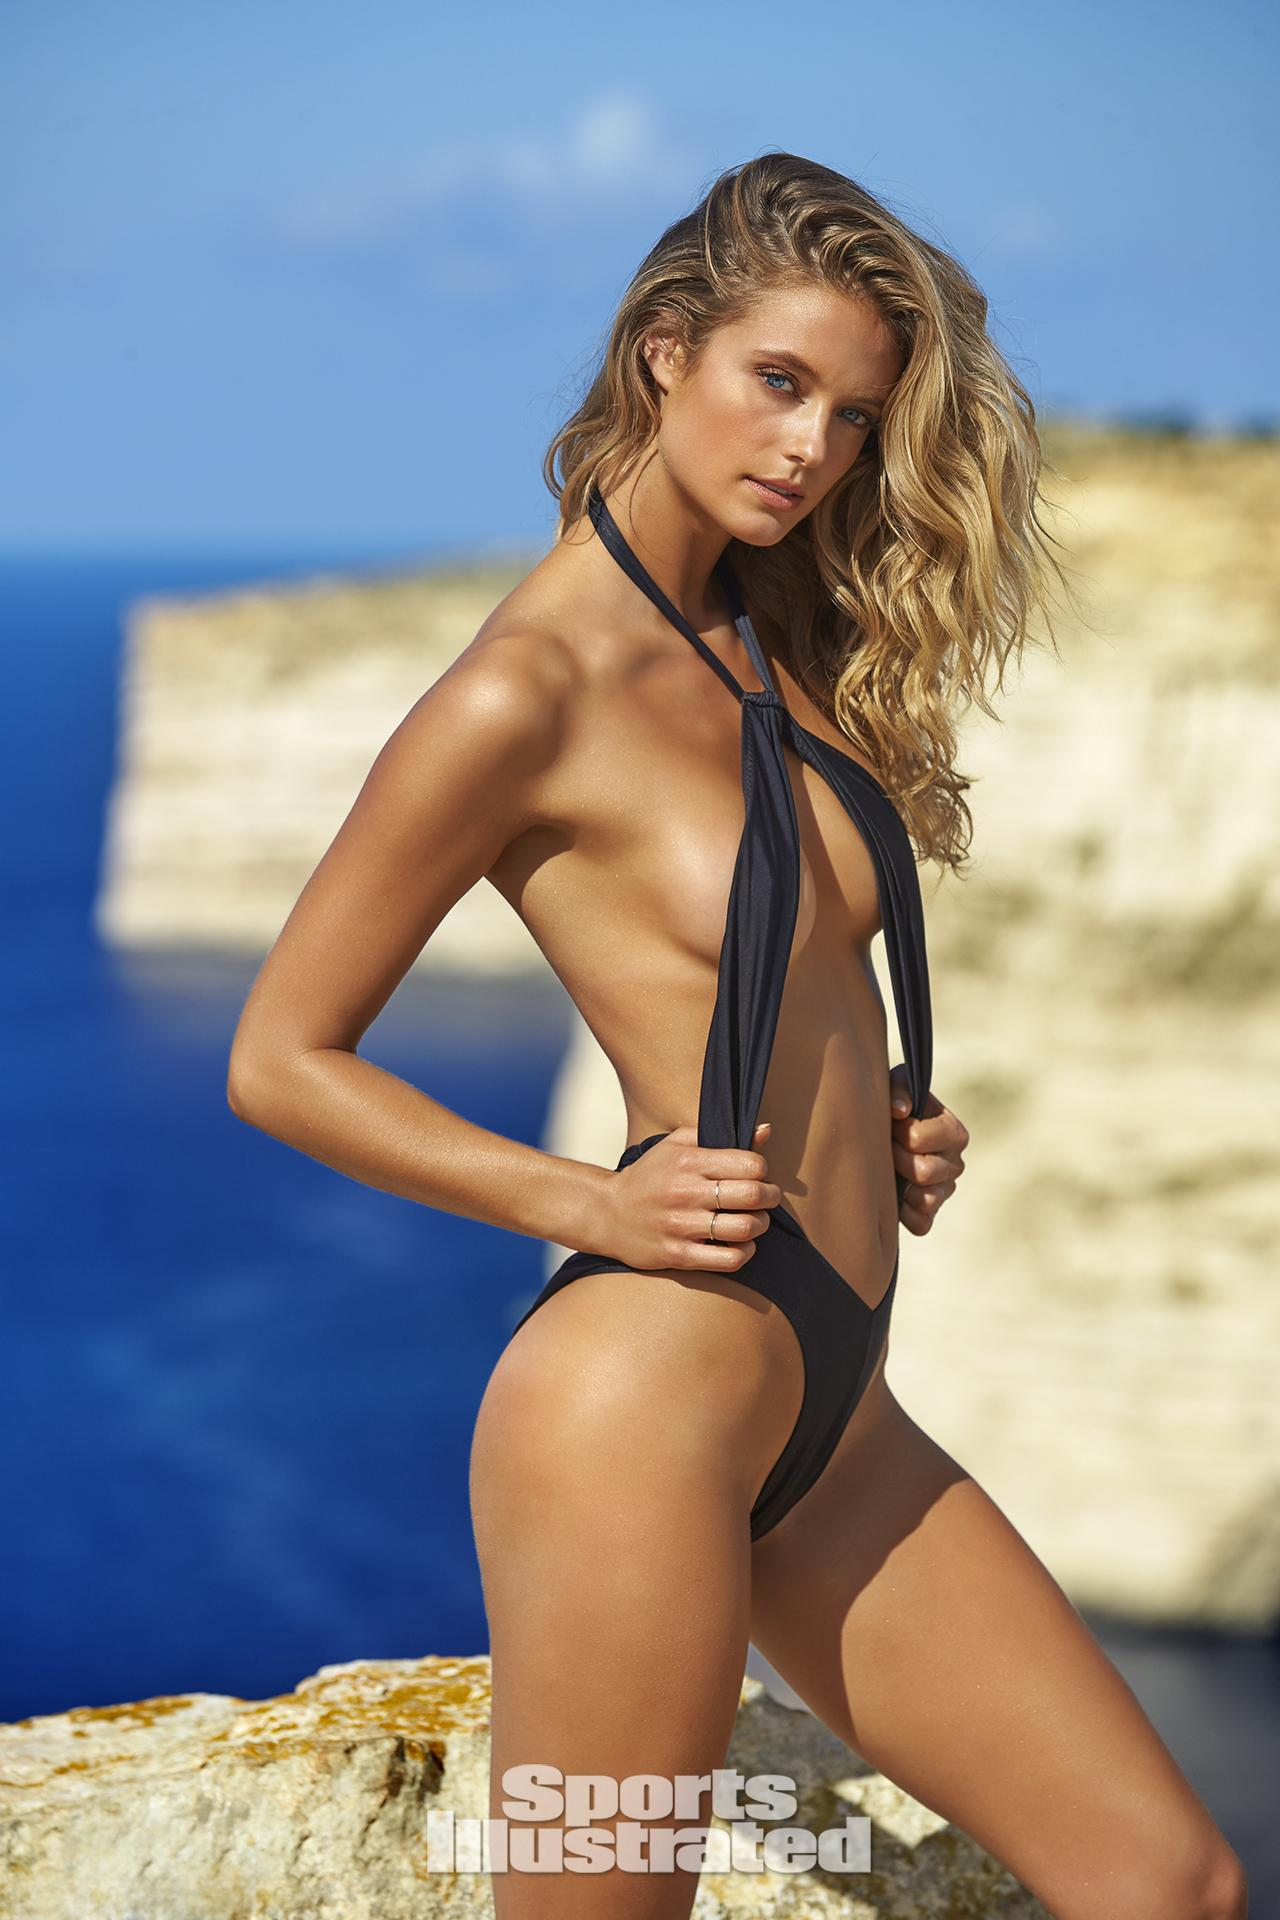 Lizbell Agency Kate Bock Shoots Sports Illustrated For